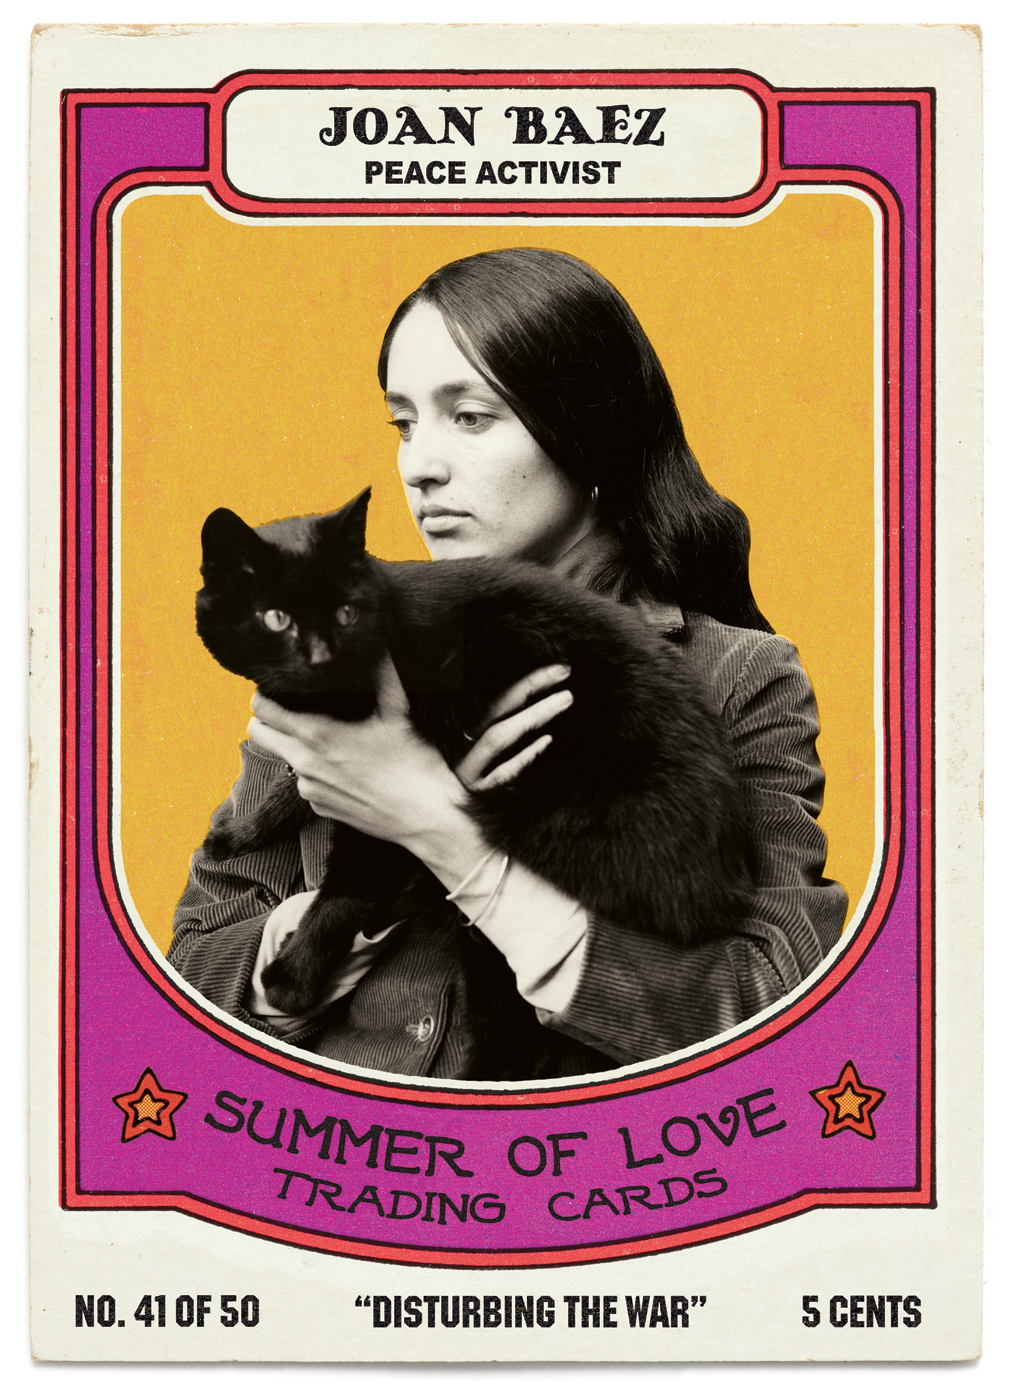 SFAC Summer of Love Trading Cards